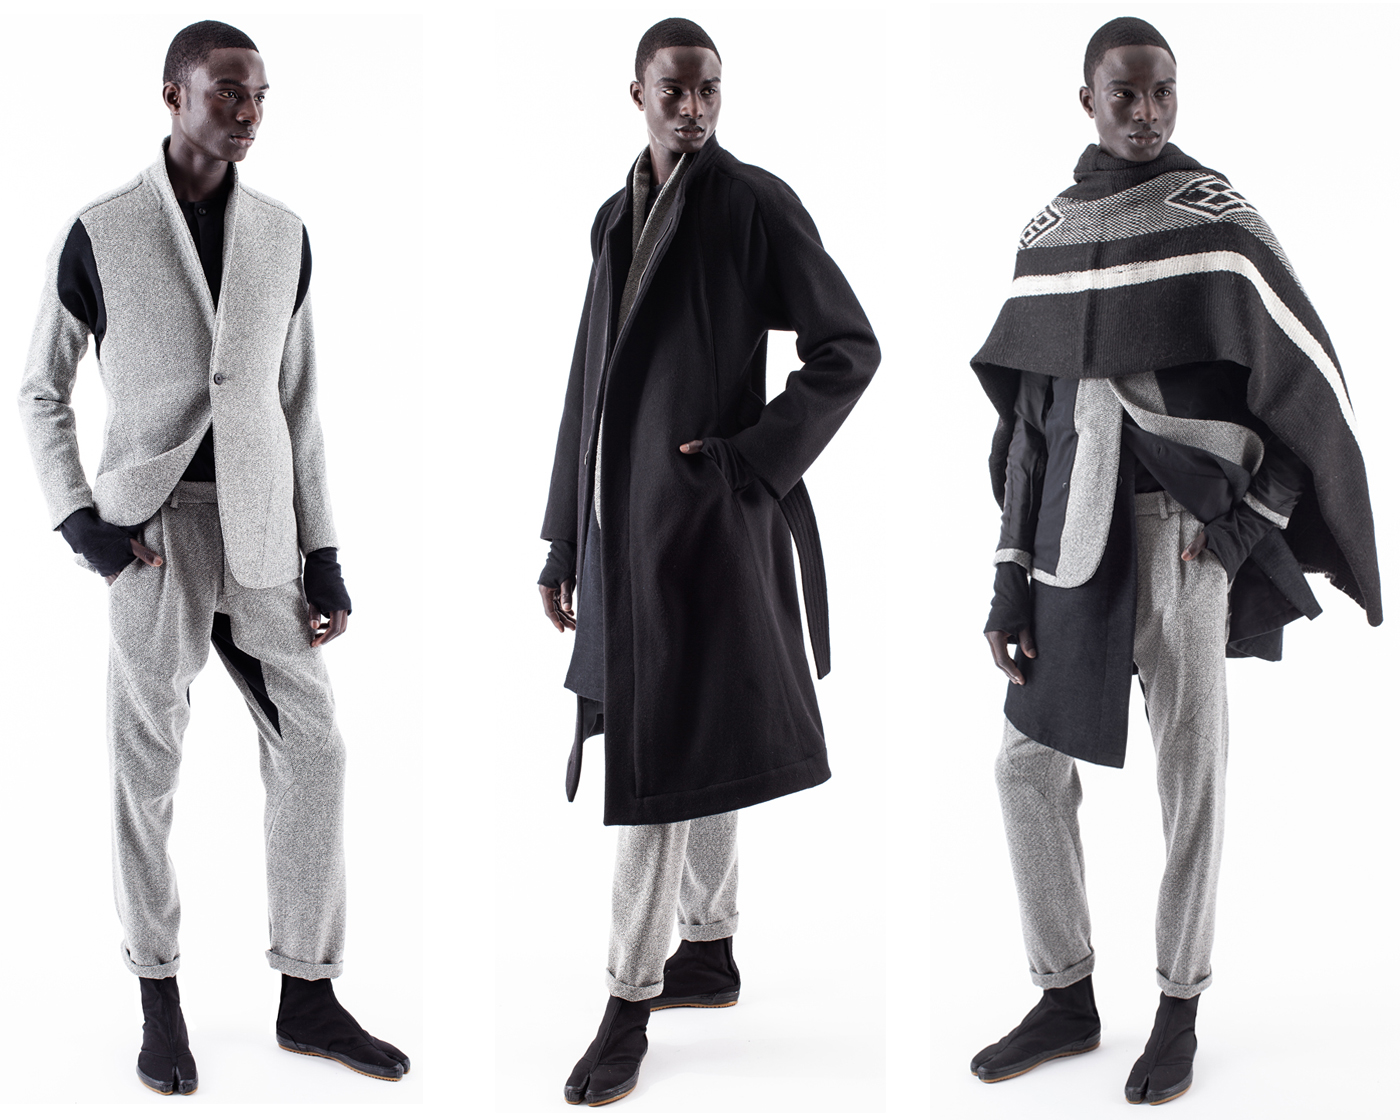 Abasi Rosborough AW15 1.jpg